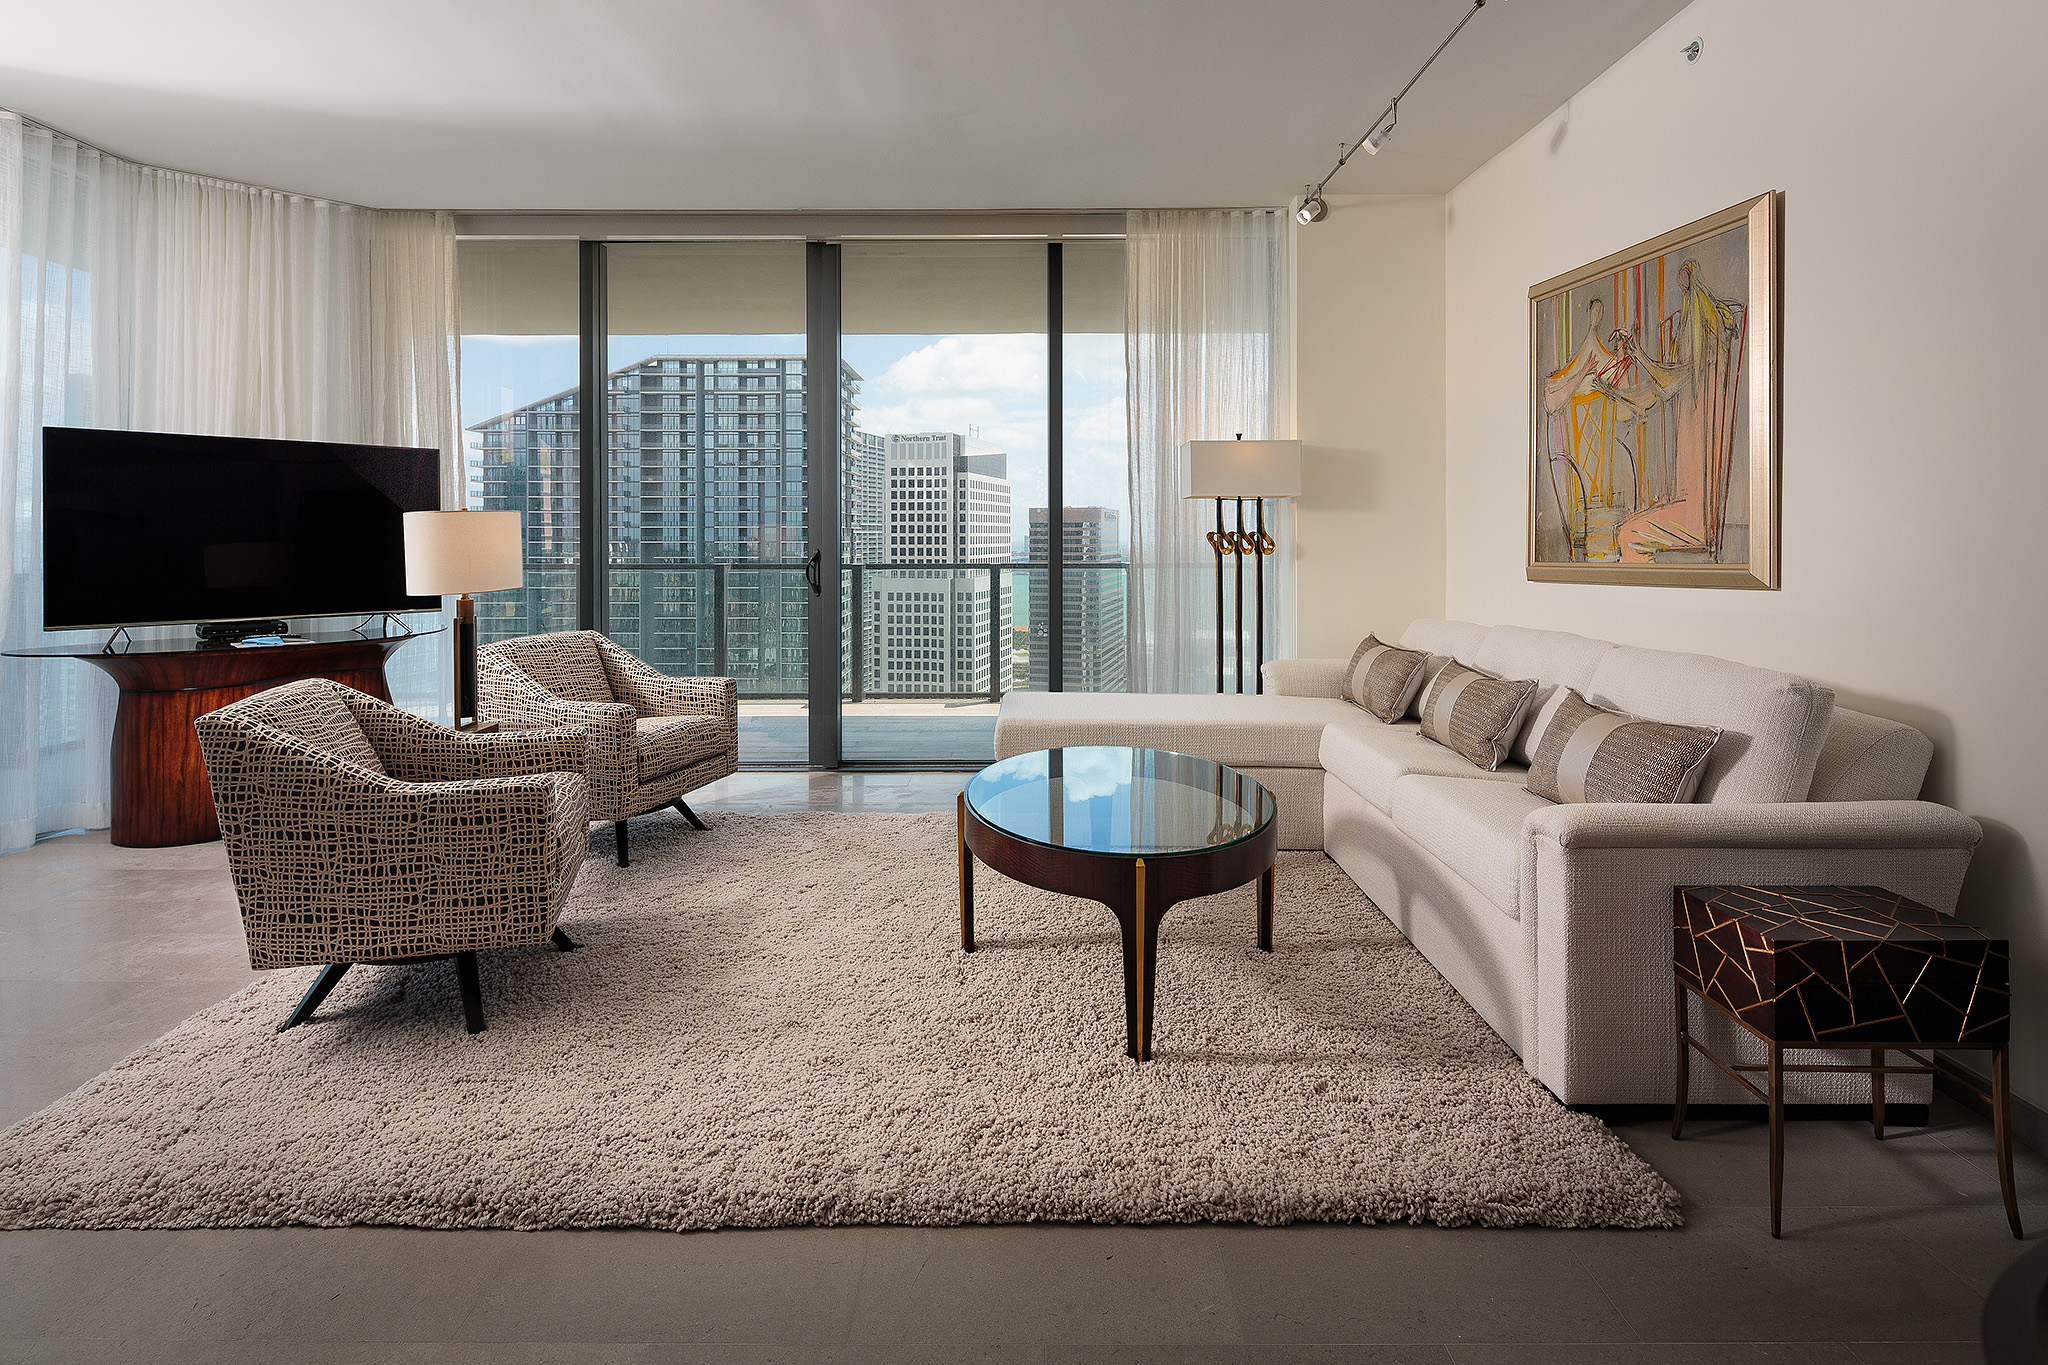 Interior and Architectural photography miami 07